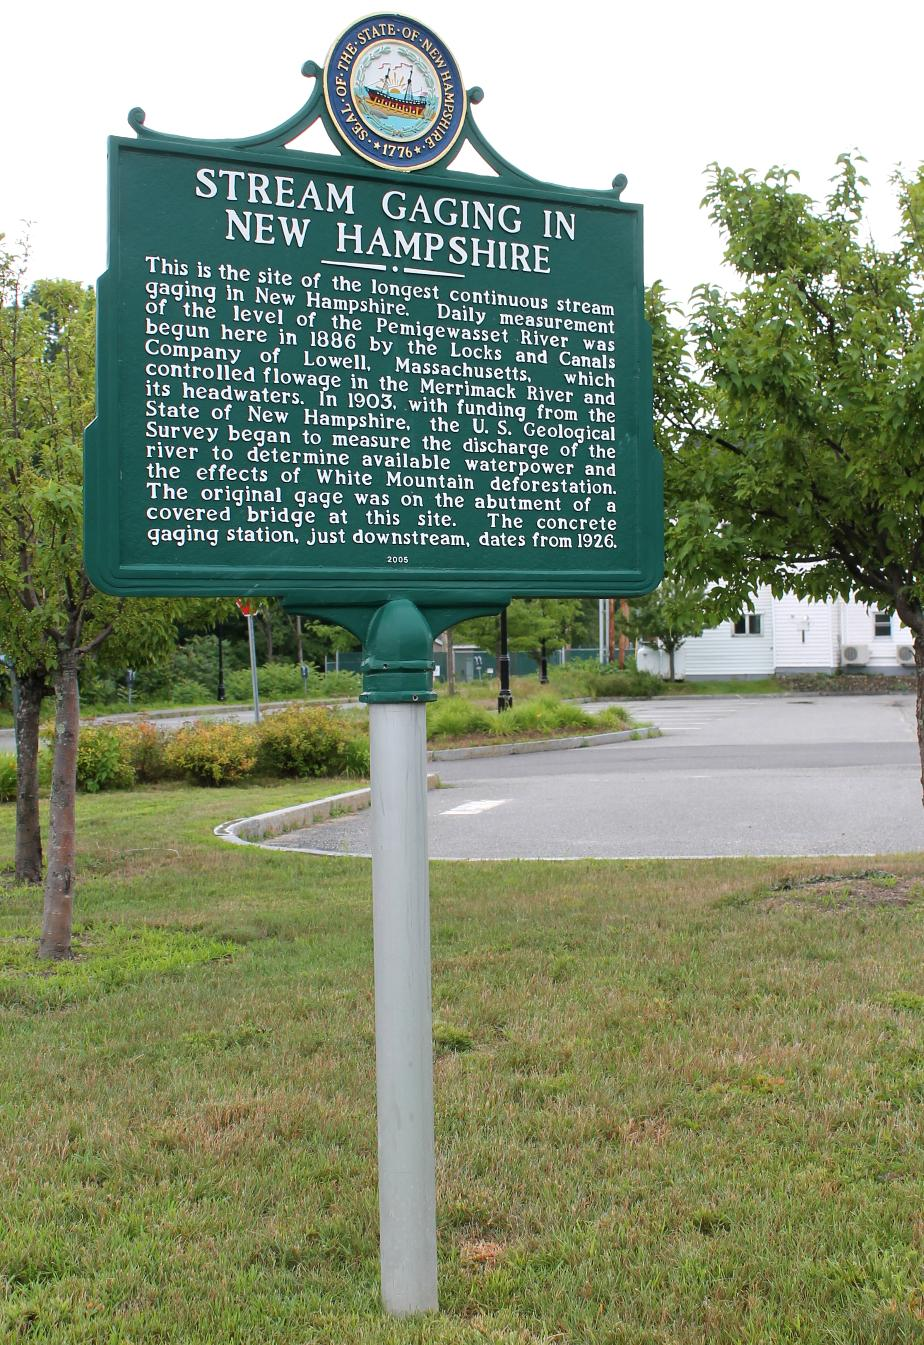 Stream Gaging in NH - Plymouth NH Historical Marker